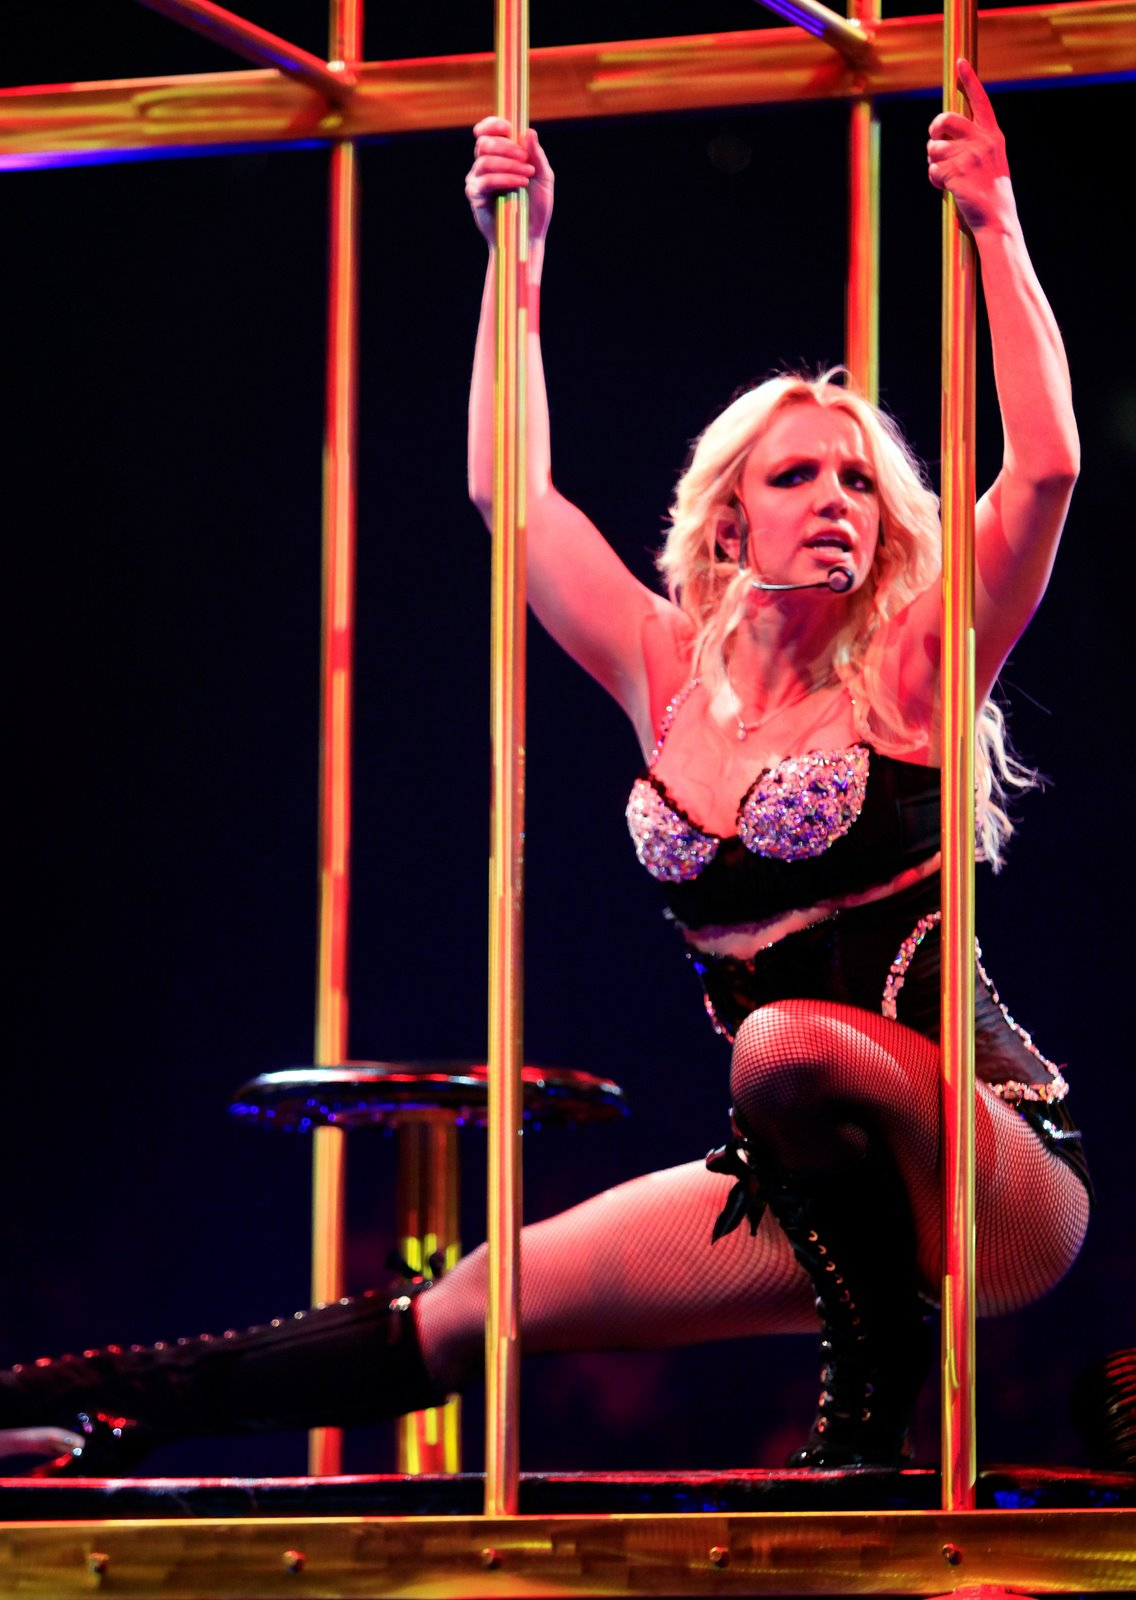 [66819_babayaga_Britney_Spears_The_Circus_Starring_Britney_Spears_Performance_03-03-2009_001_123_105lo.jpg]